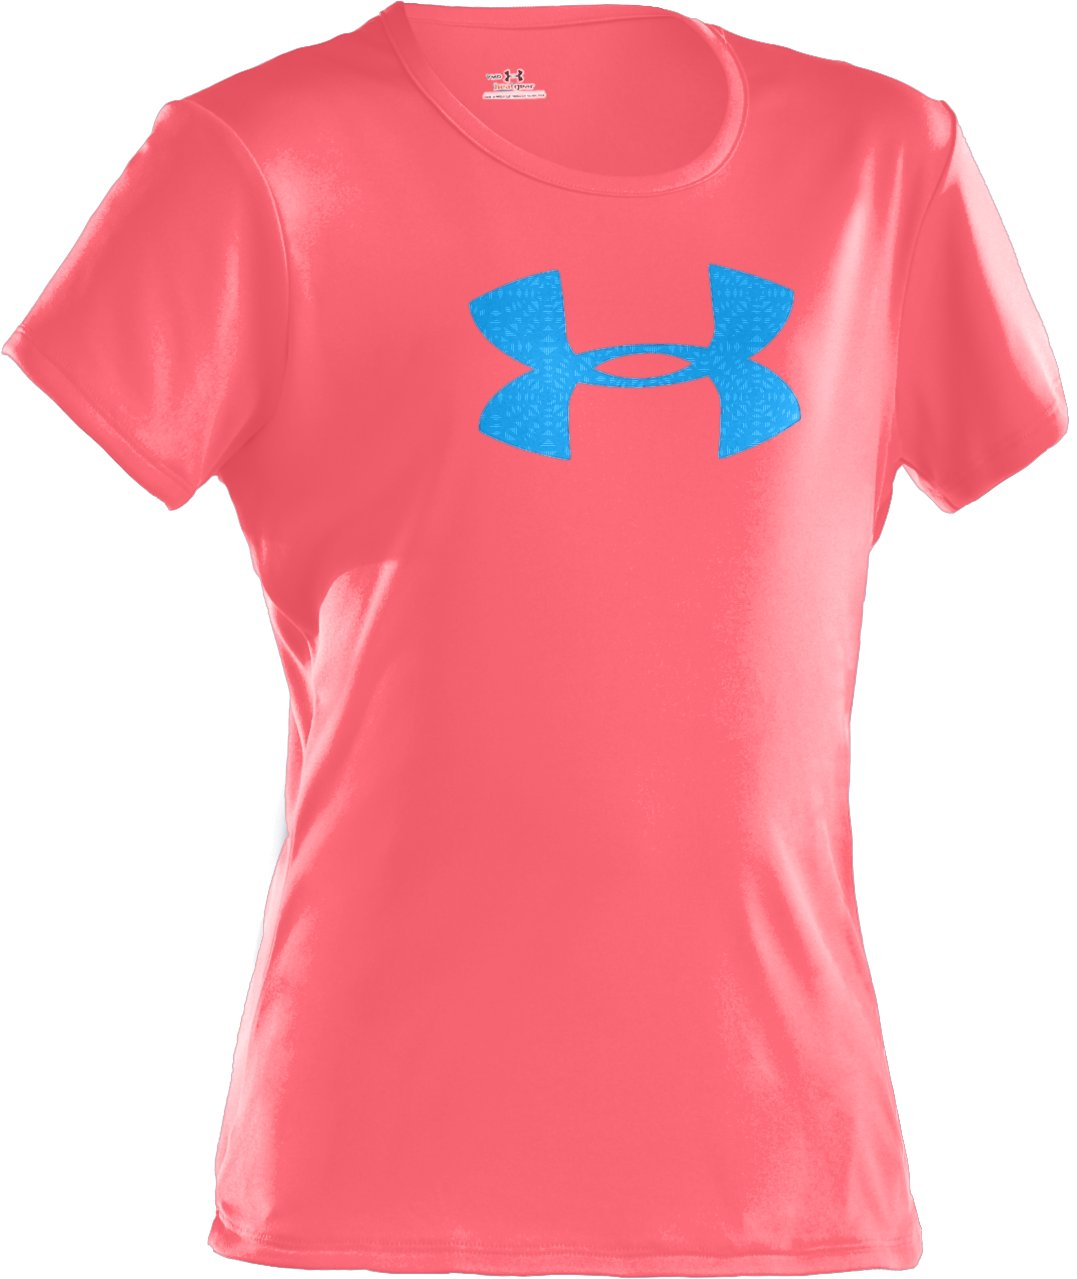 Girls' UA Big Logo Short Sleeve T-Shirt, BRILLIANCE